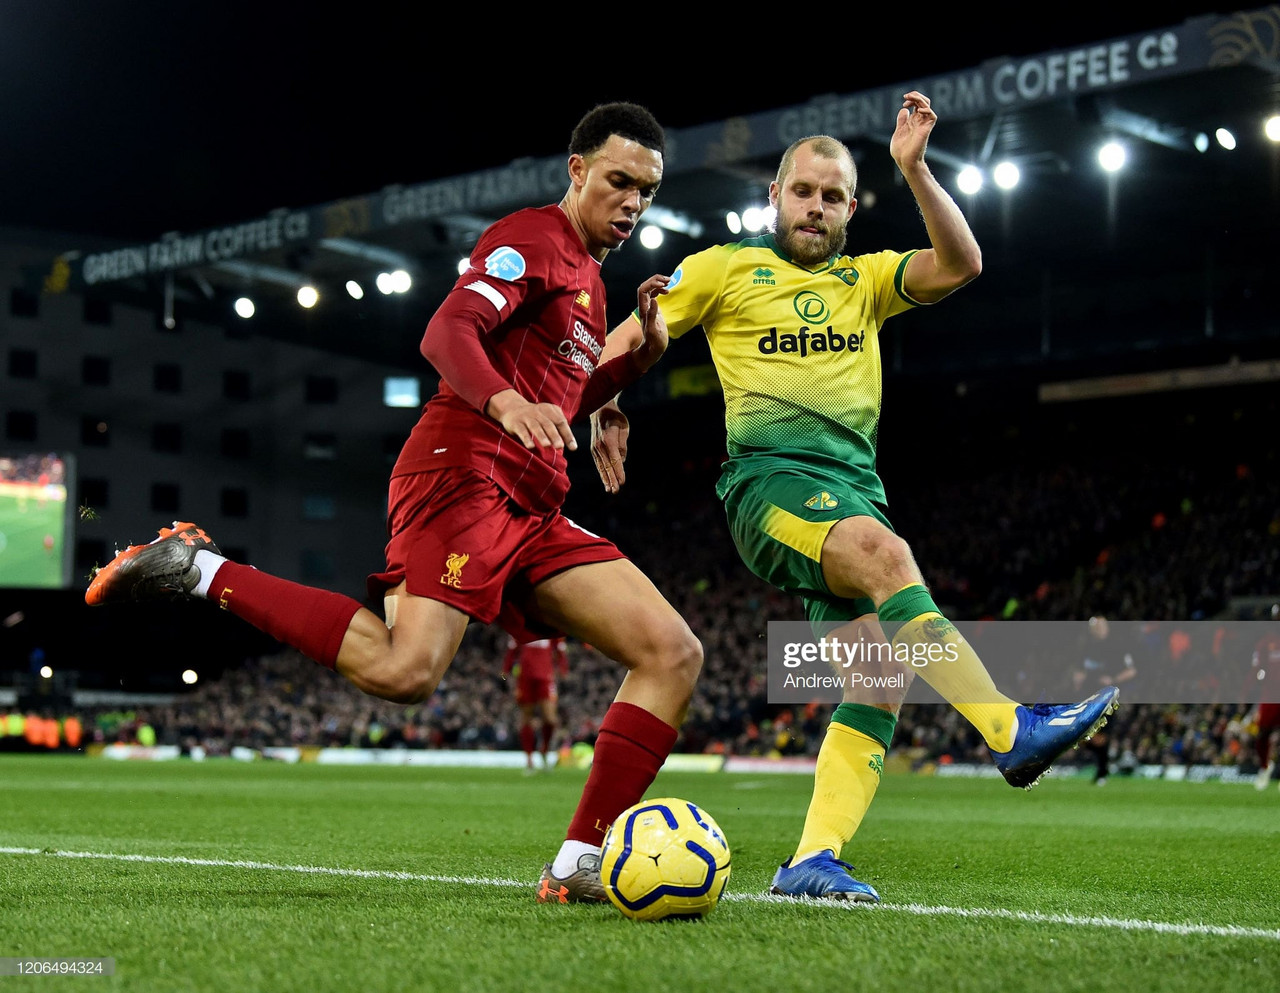 Teemu Pukki found himself defending as much as he was attacking (Photo: Getty Images)